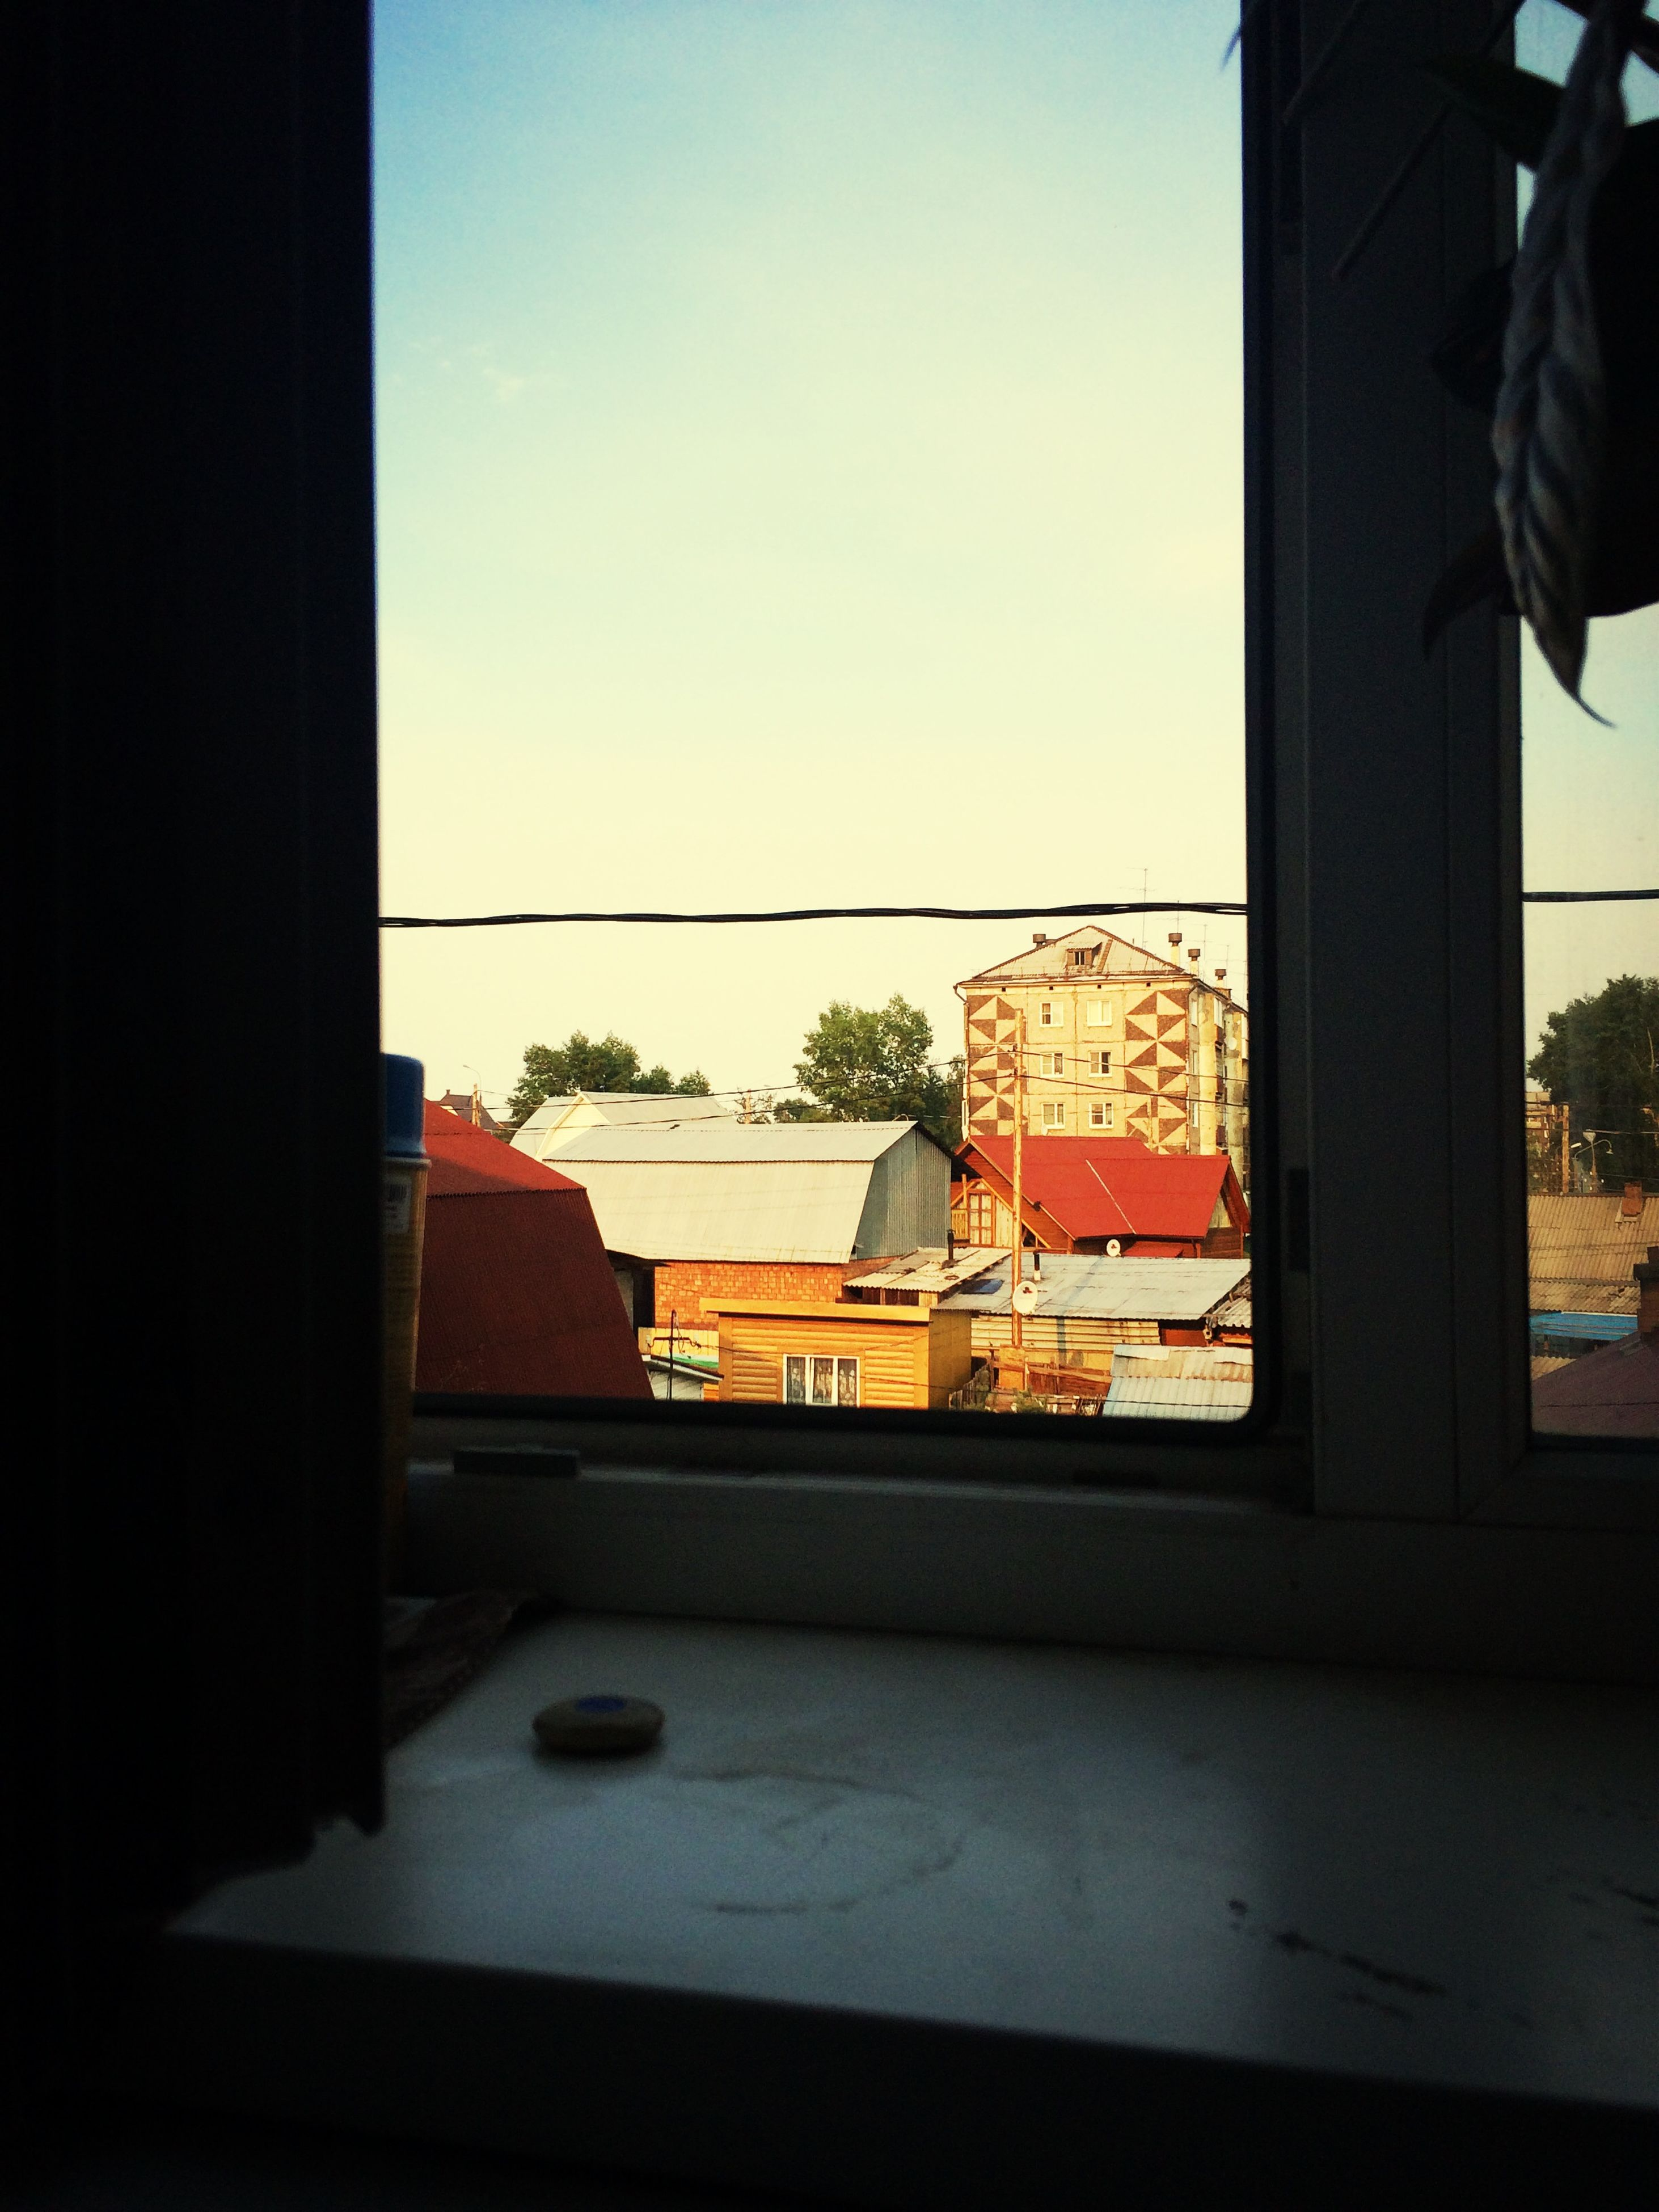 window, architecture, indoors, built structure, building exterior, glass - material, sky, transparent, house, clear sky, sunlight, day, residential structure, home interior, looking through window, sunset, wall - building feature, city, no people, window sill